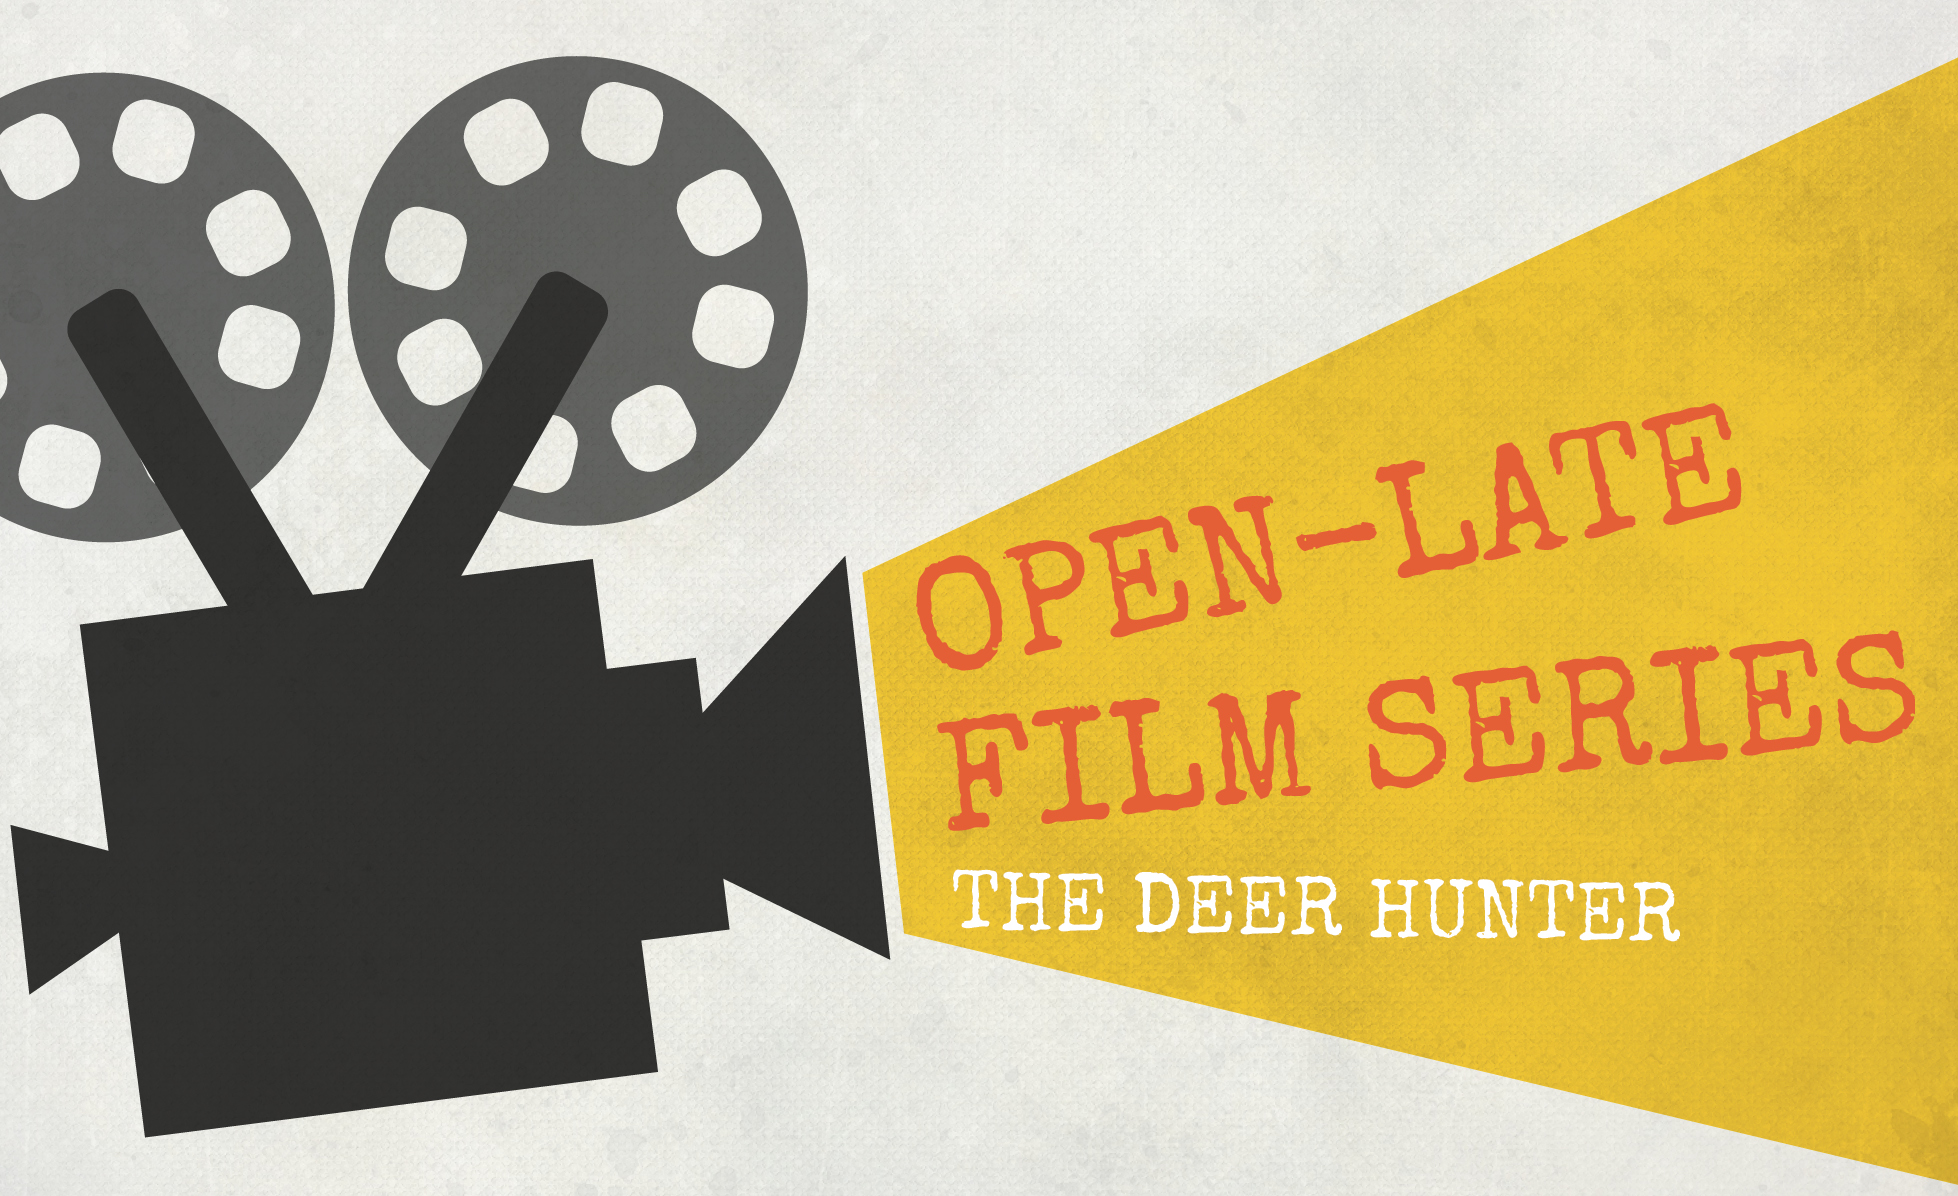 Open-Late Film Series: The Deer Hunter